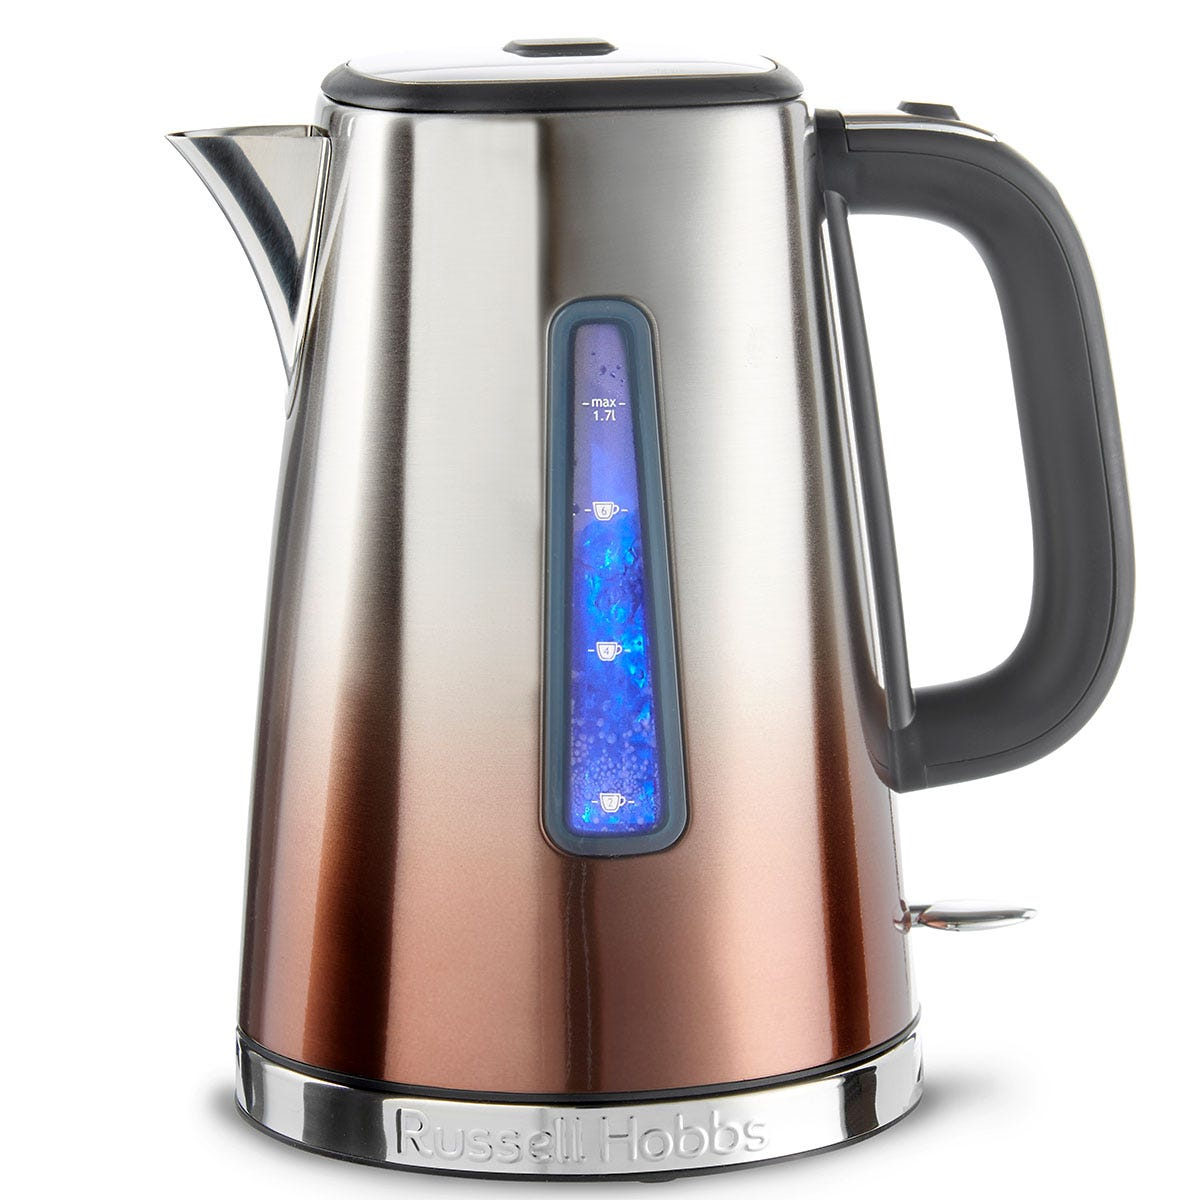 Russell Hobbs 25113 1.7L Eclipse 3000W Jug Kettle - Copper Sunset